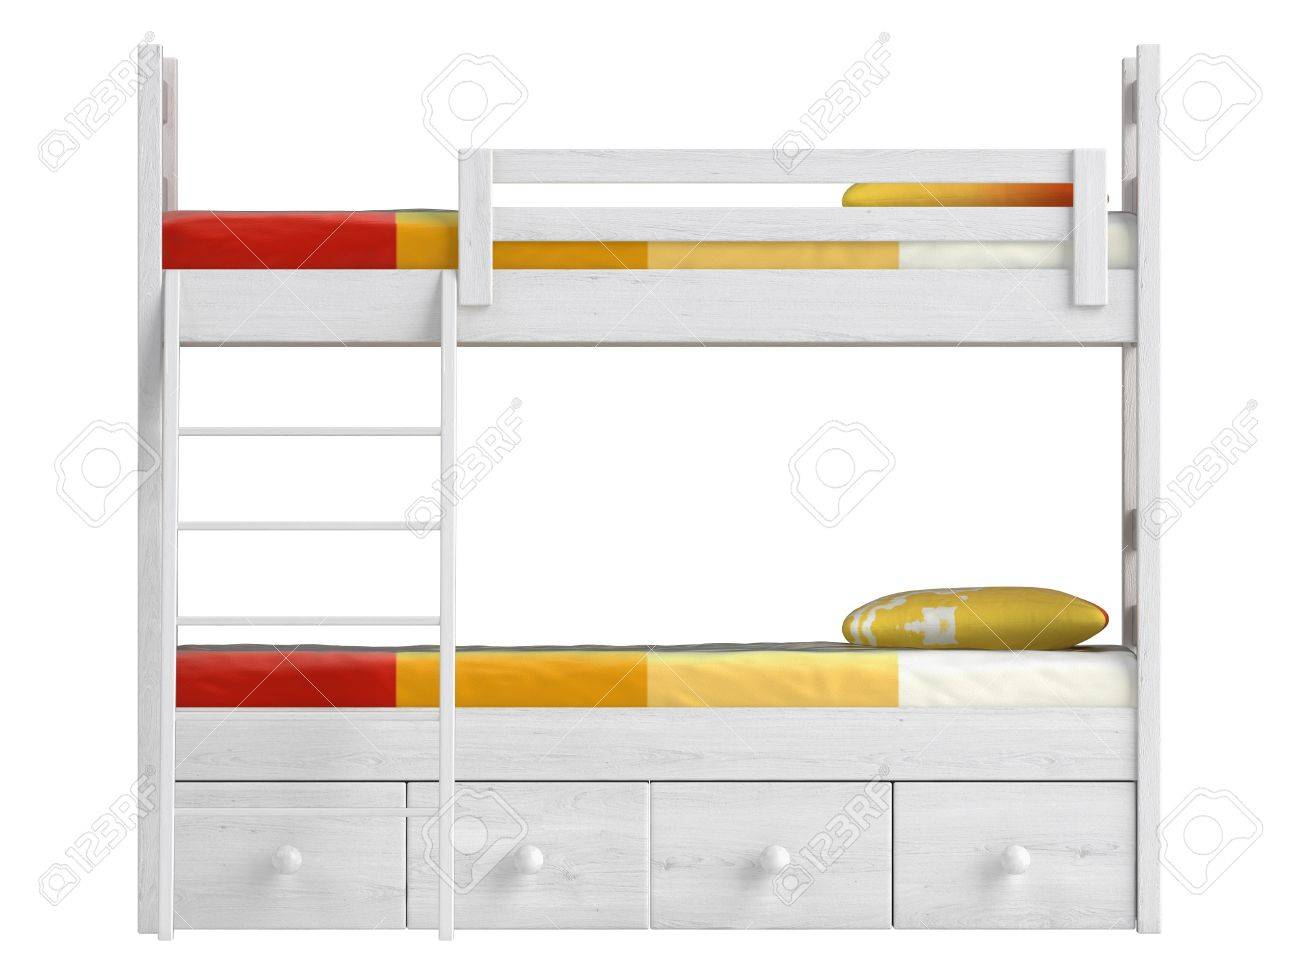 Picture of: Double Bunk Bed With Storage Drawers And A Ladder Painted White Stock Photo Picture And Royalty Free Image Image 15306956